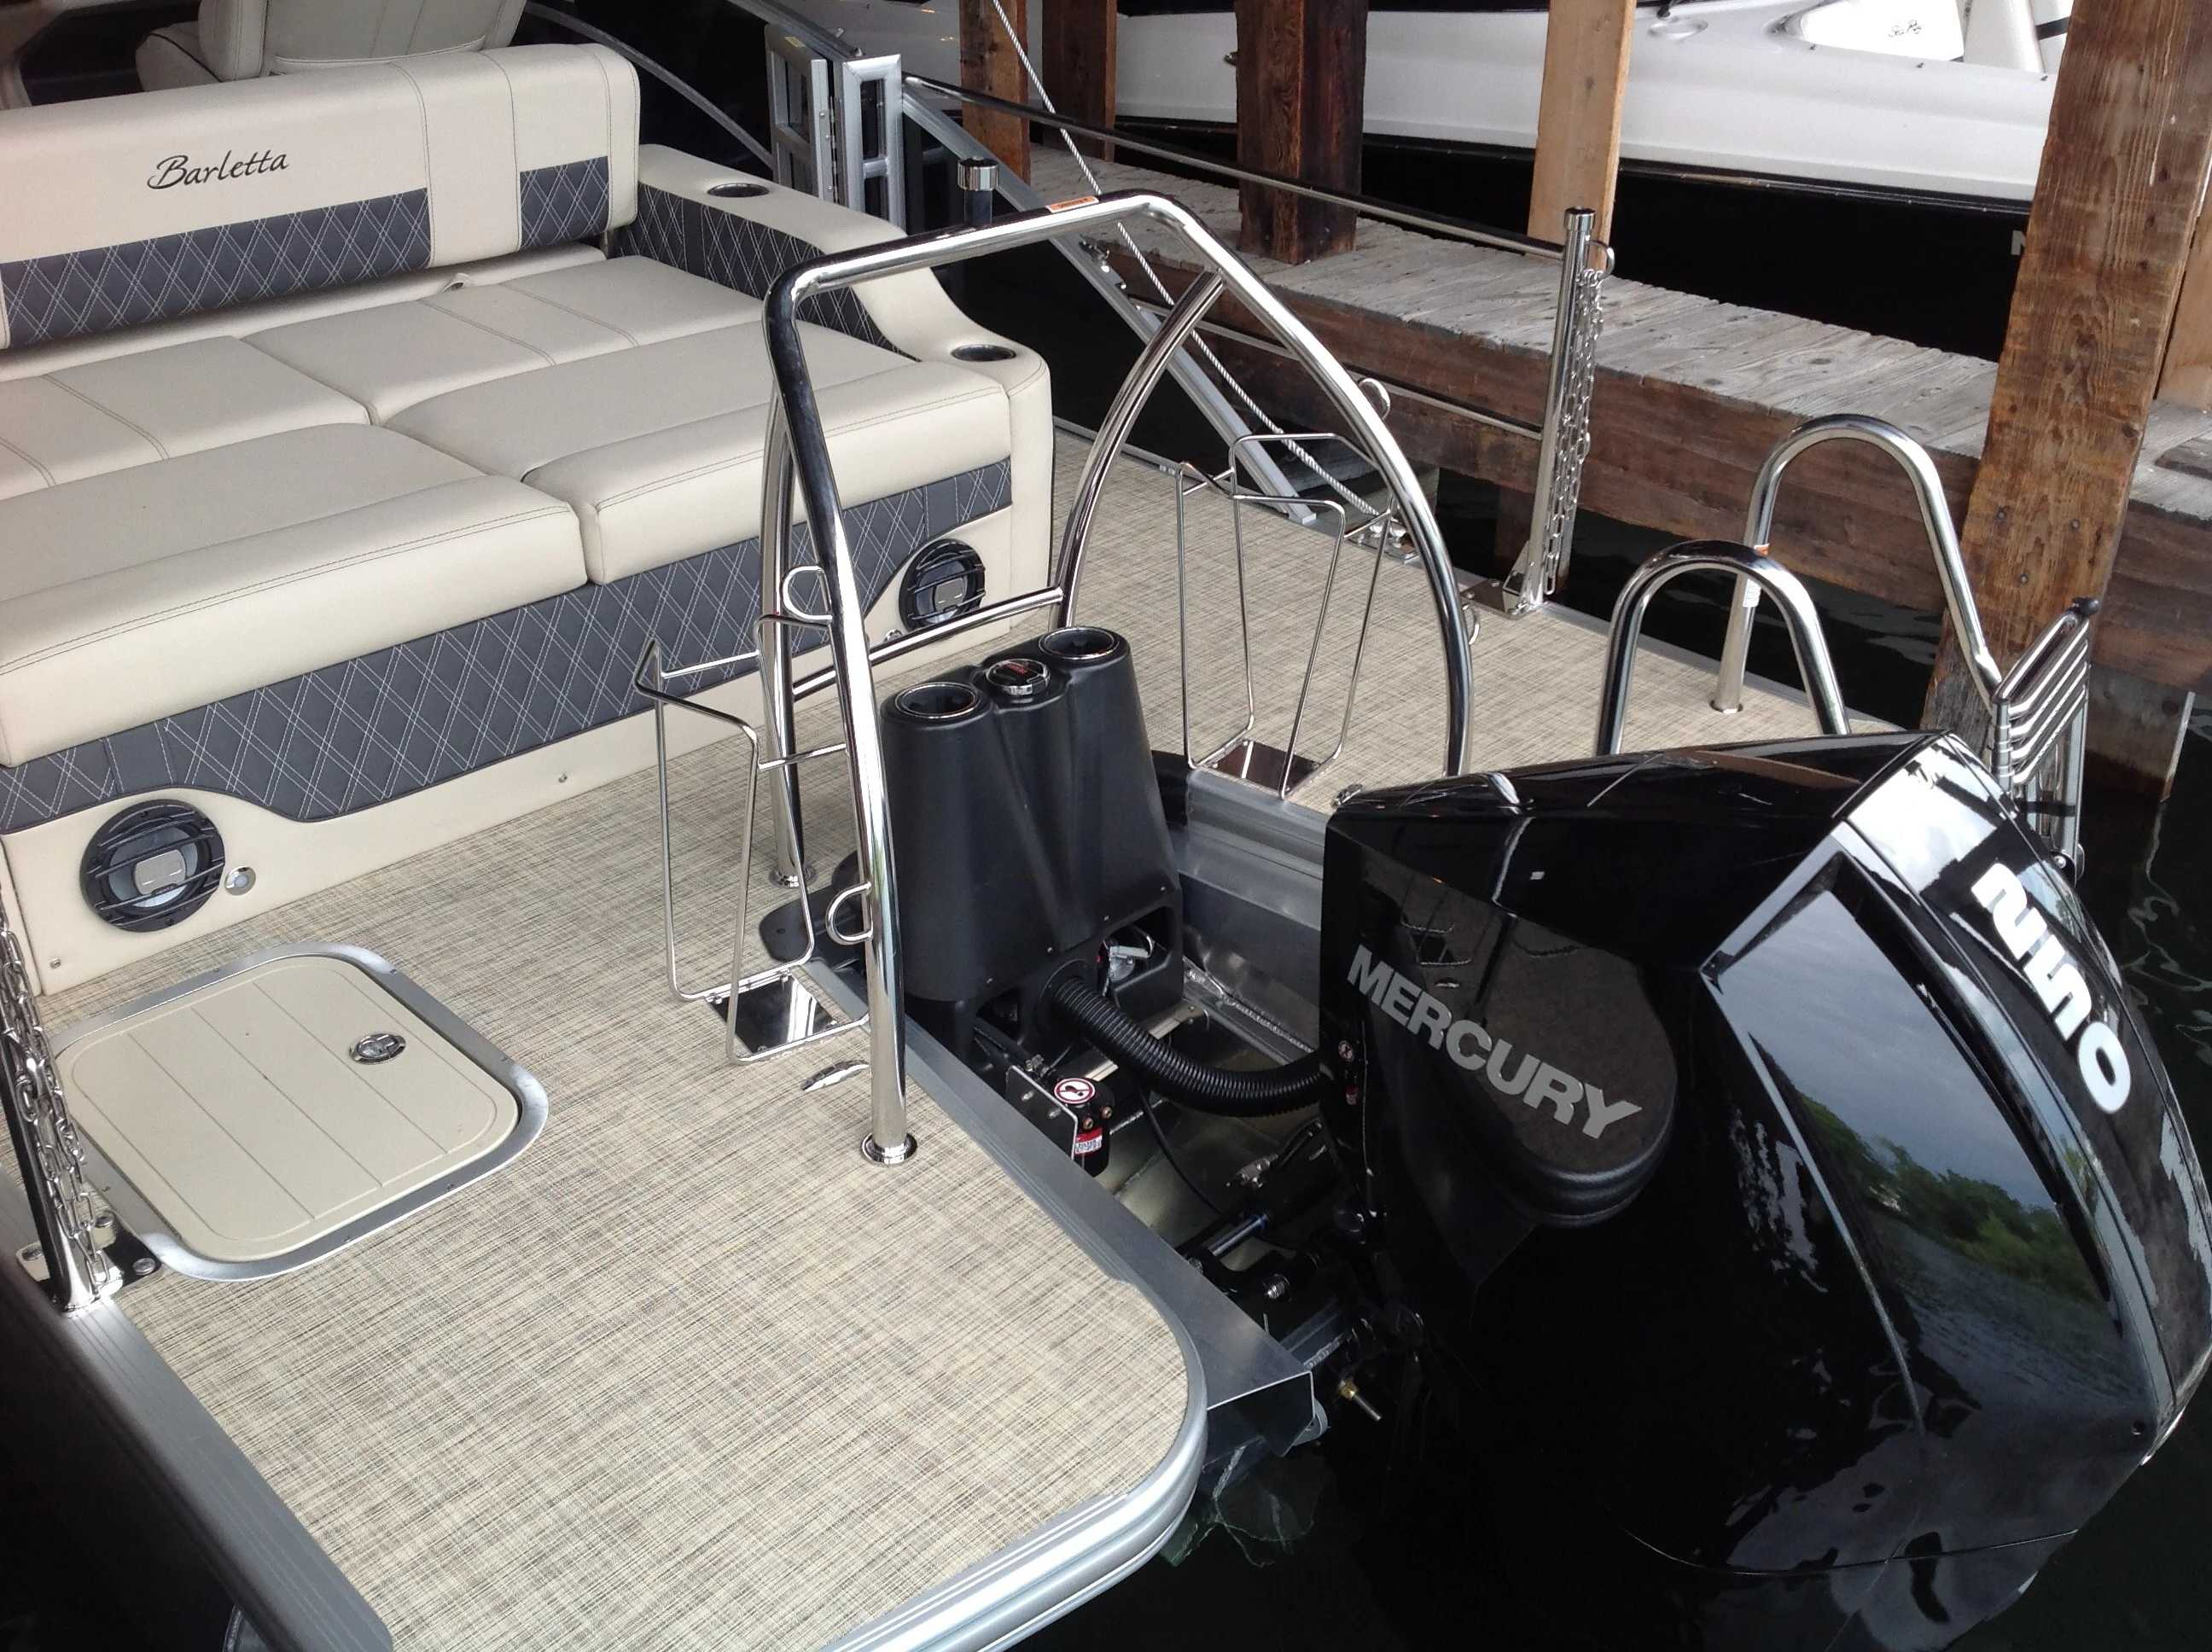 2021 Barletta boat for sale, model of the boat is L23UC & Image # 12 of 12